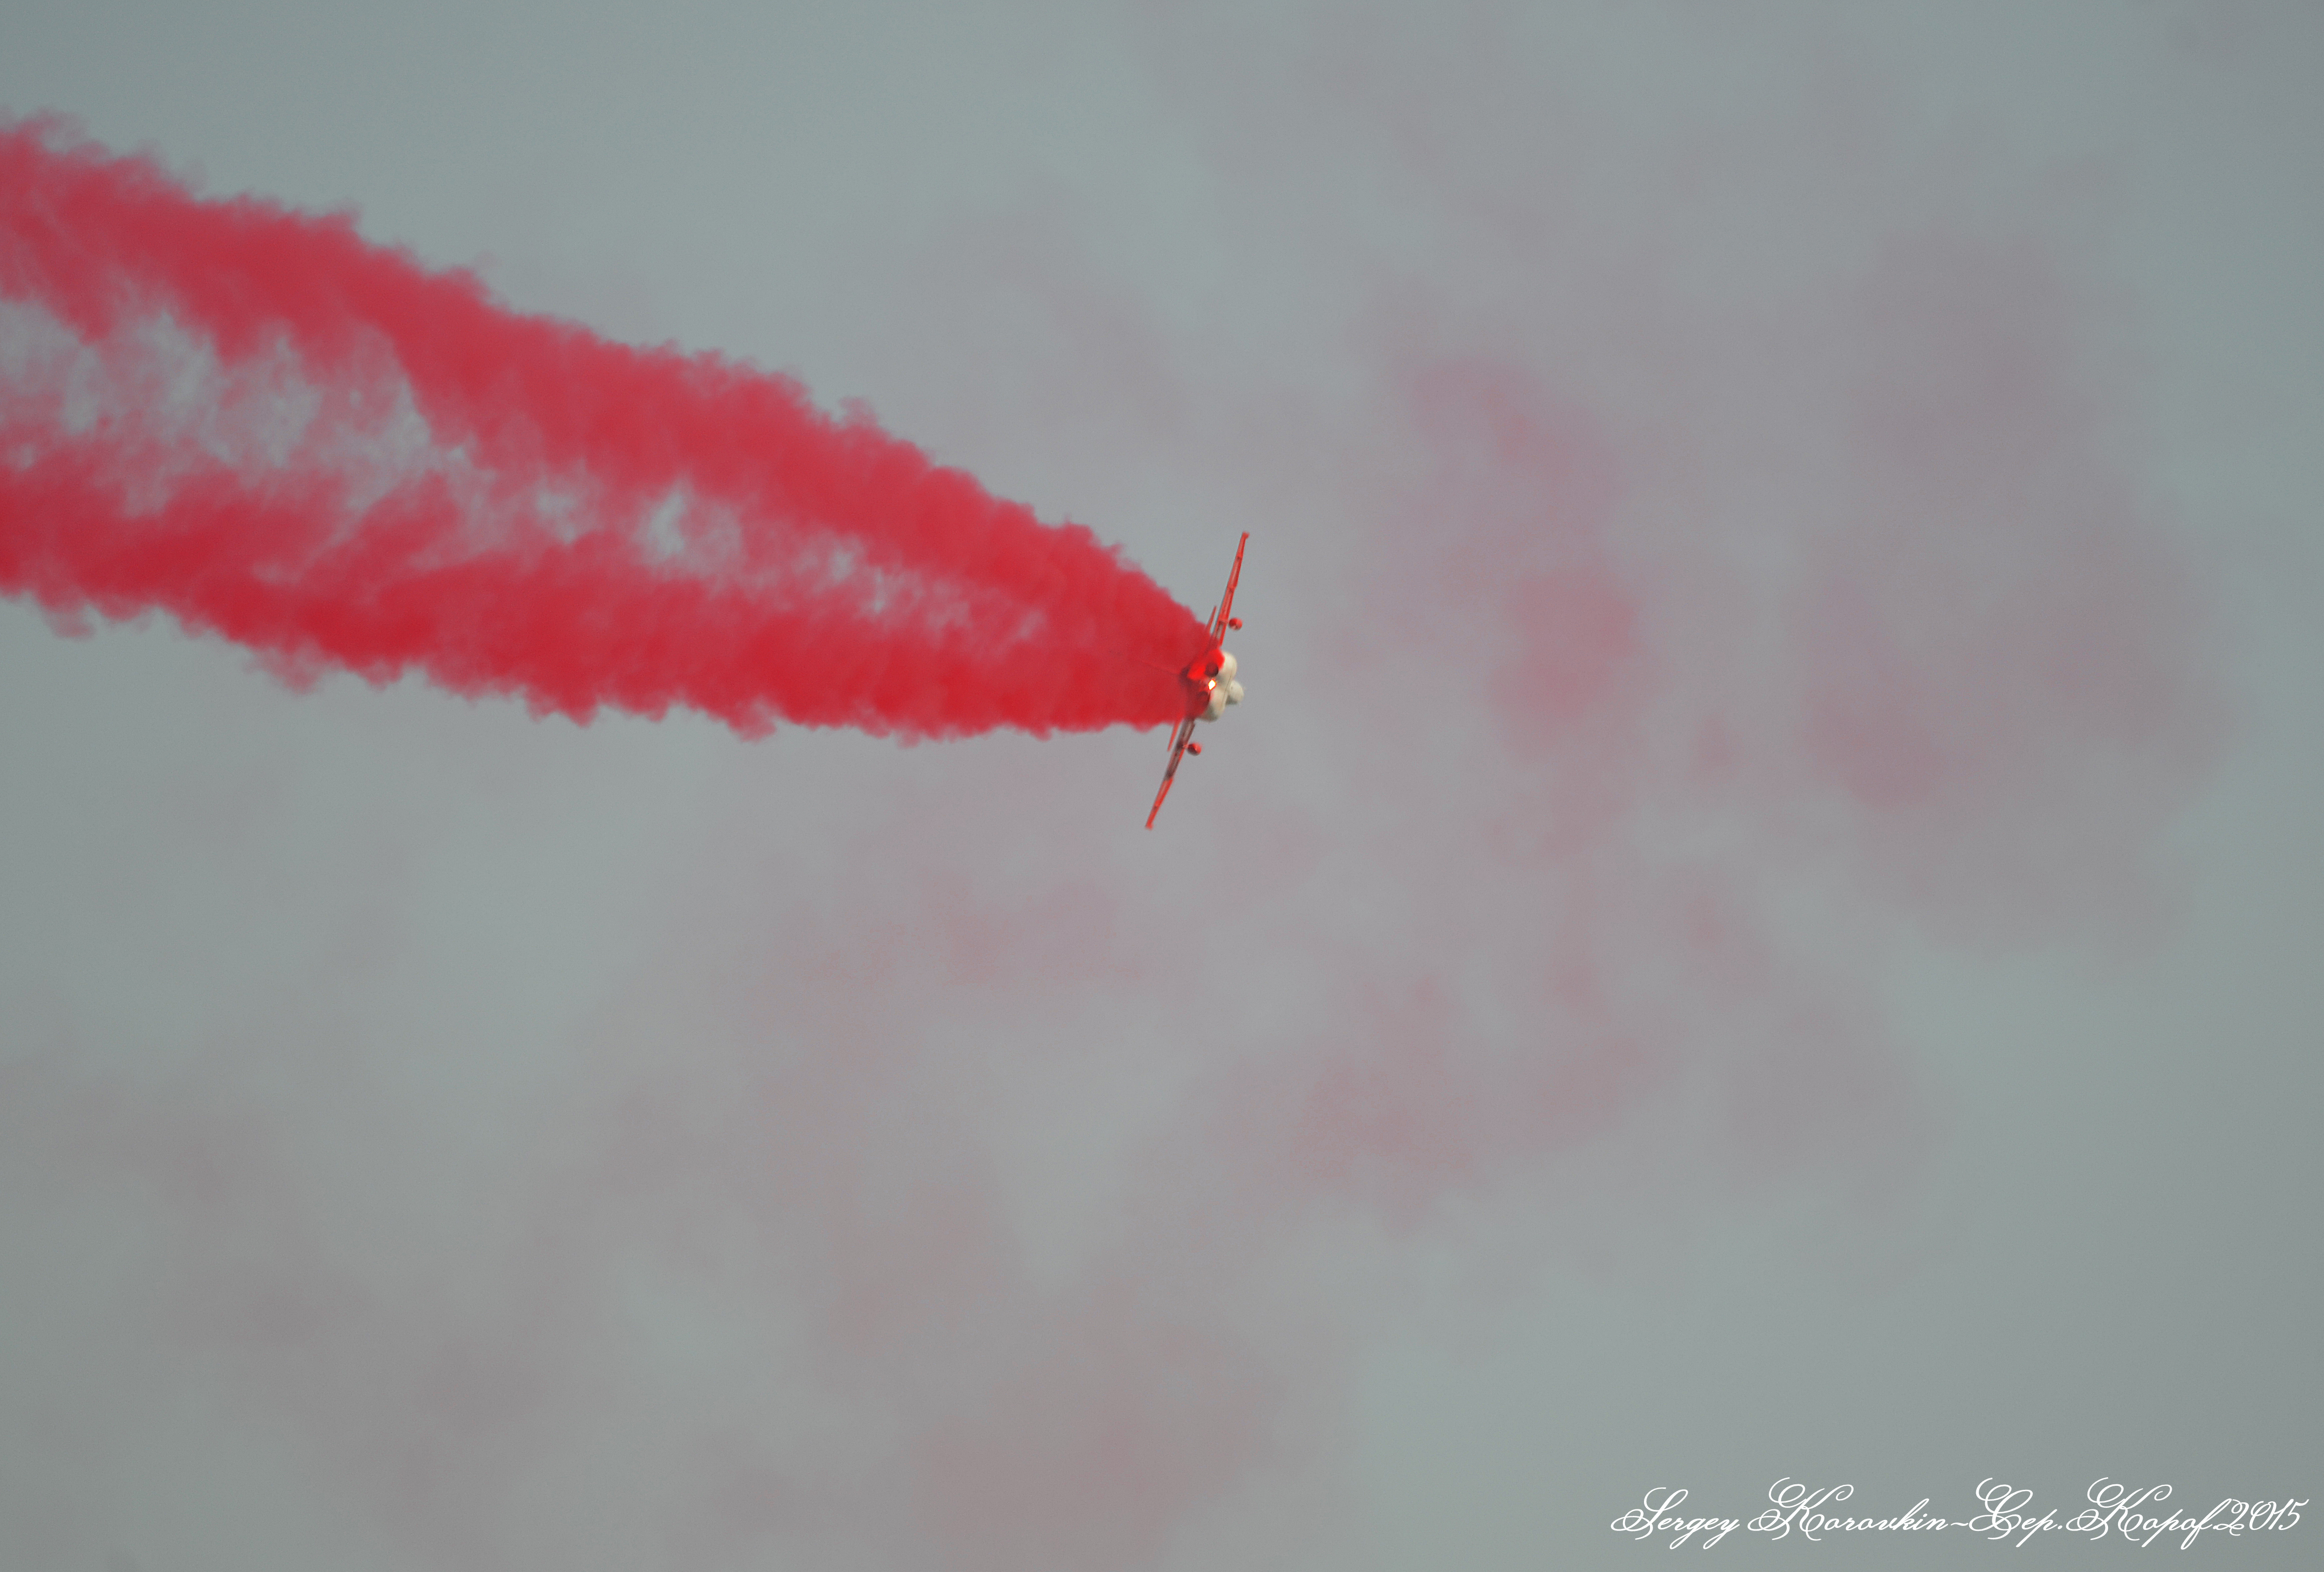 MAKS-2015 Air Show: Photos and Discussion - Page 2 0_17b3e4_850013ef_orig